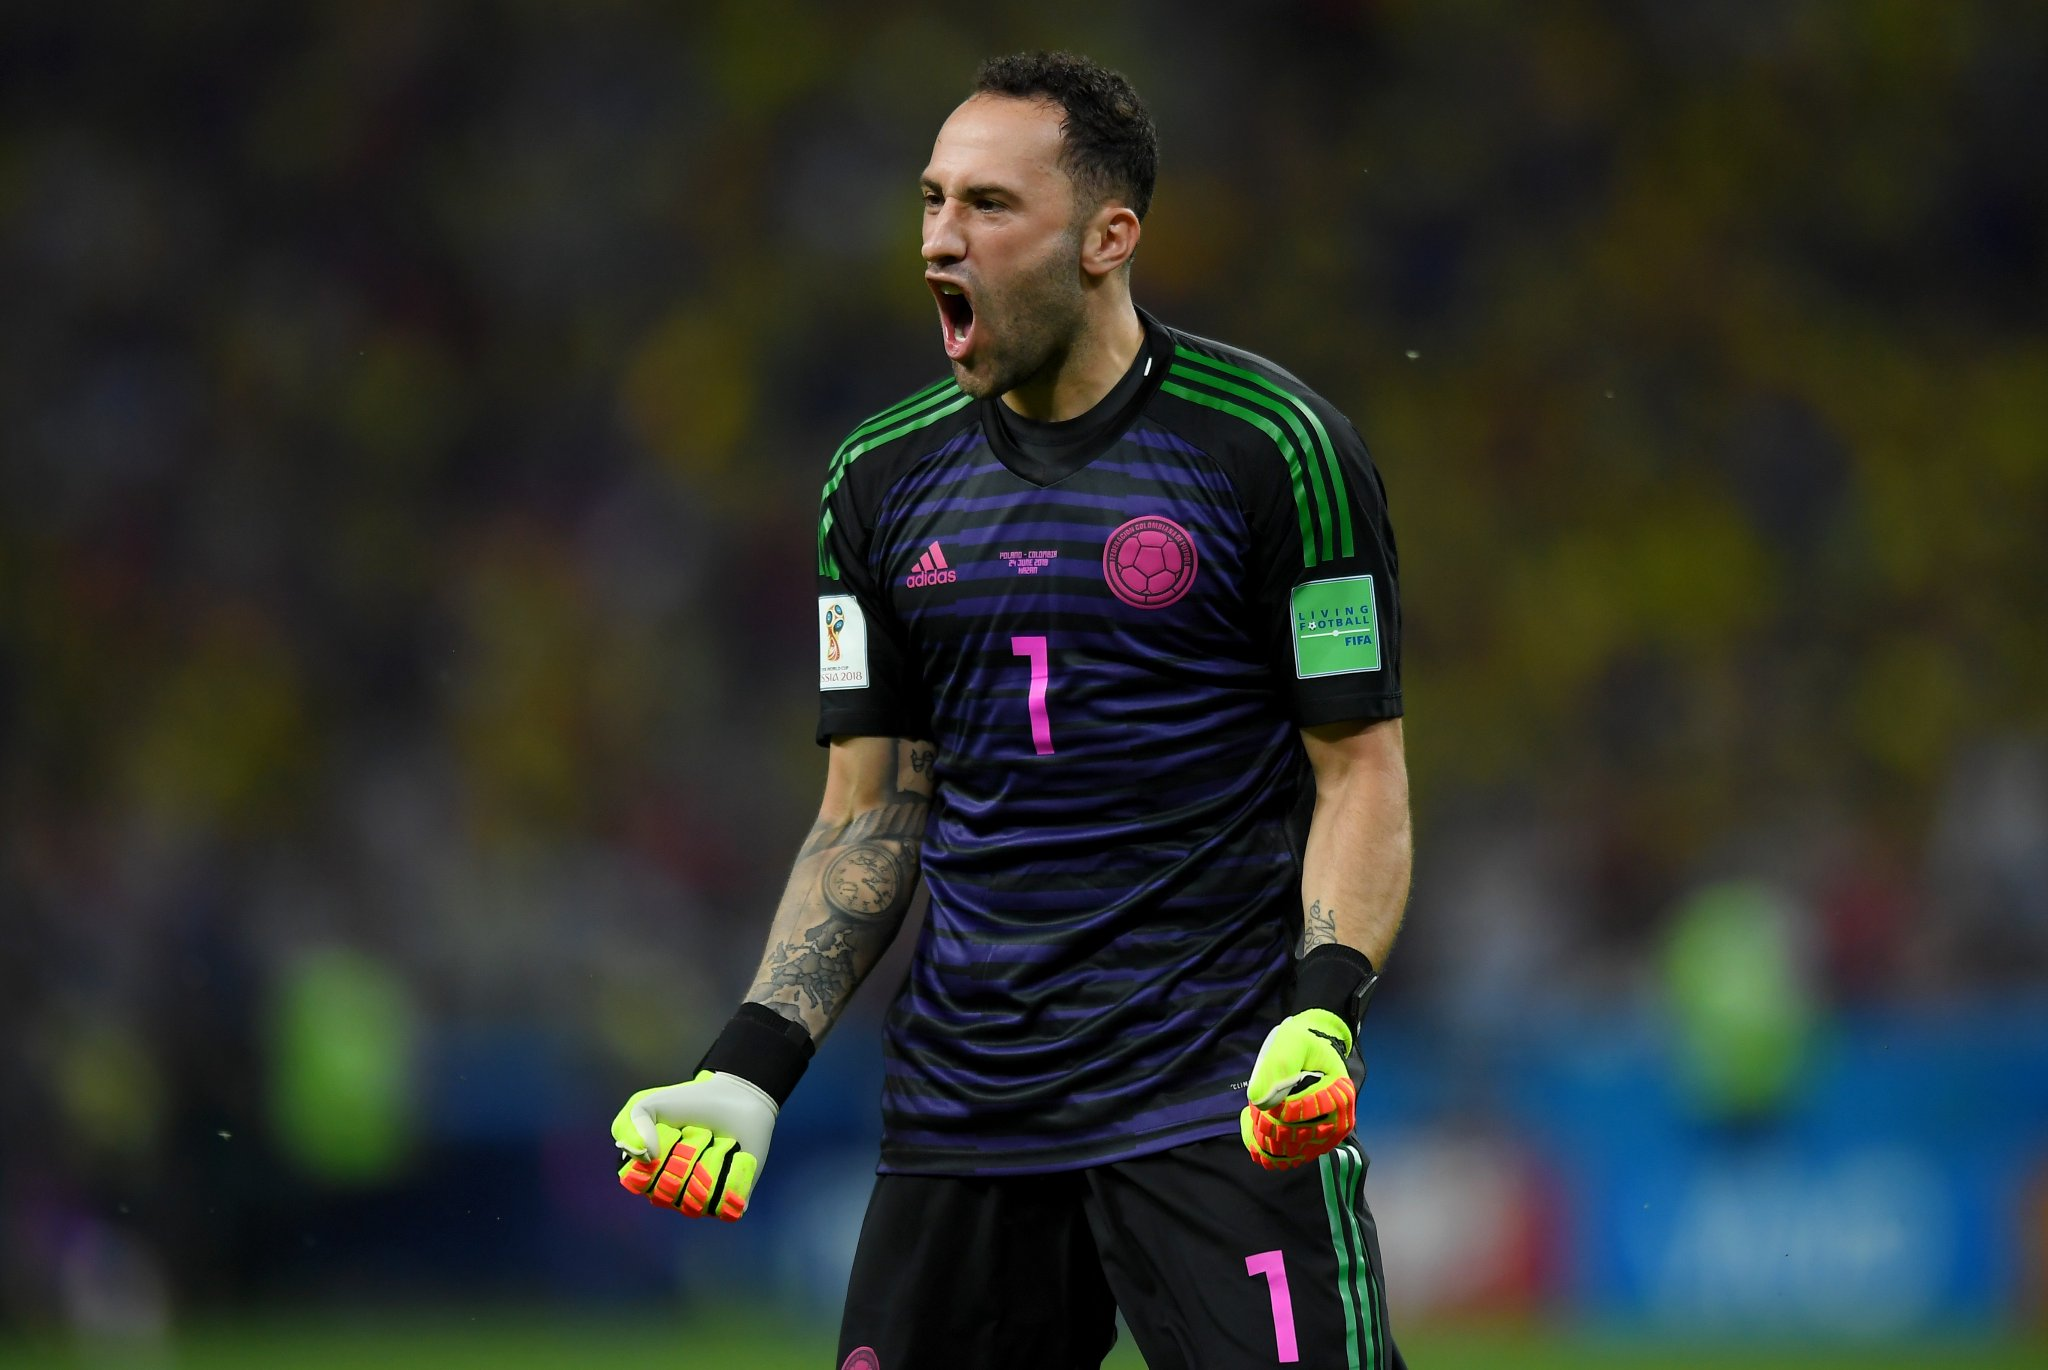 David Ospina at WORLD CUP 2018